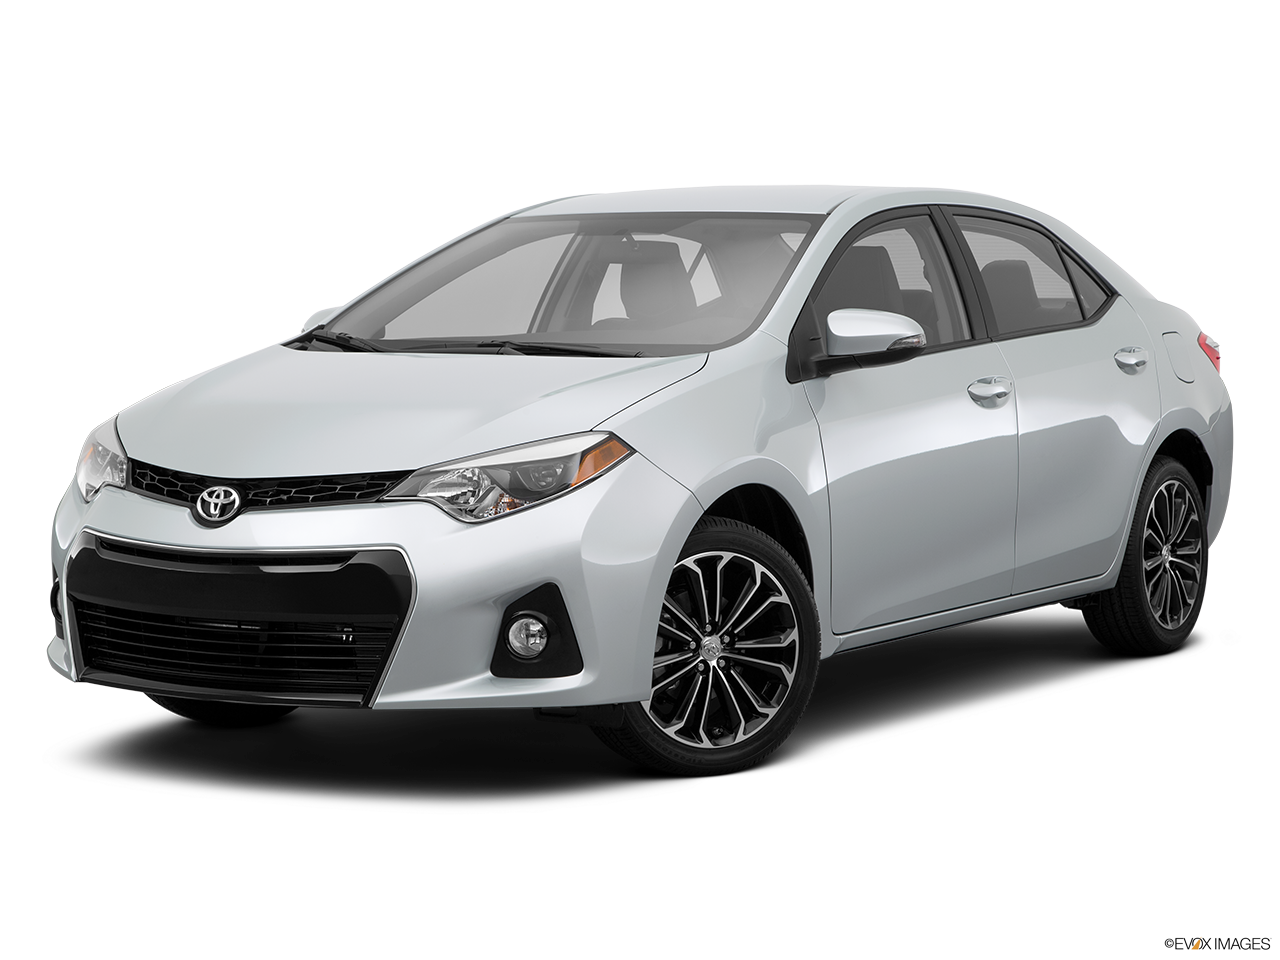 Test Drive A 2015 Toyota Corolla at McGeorge Toyota in Richmond